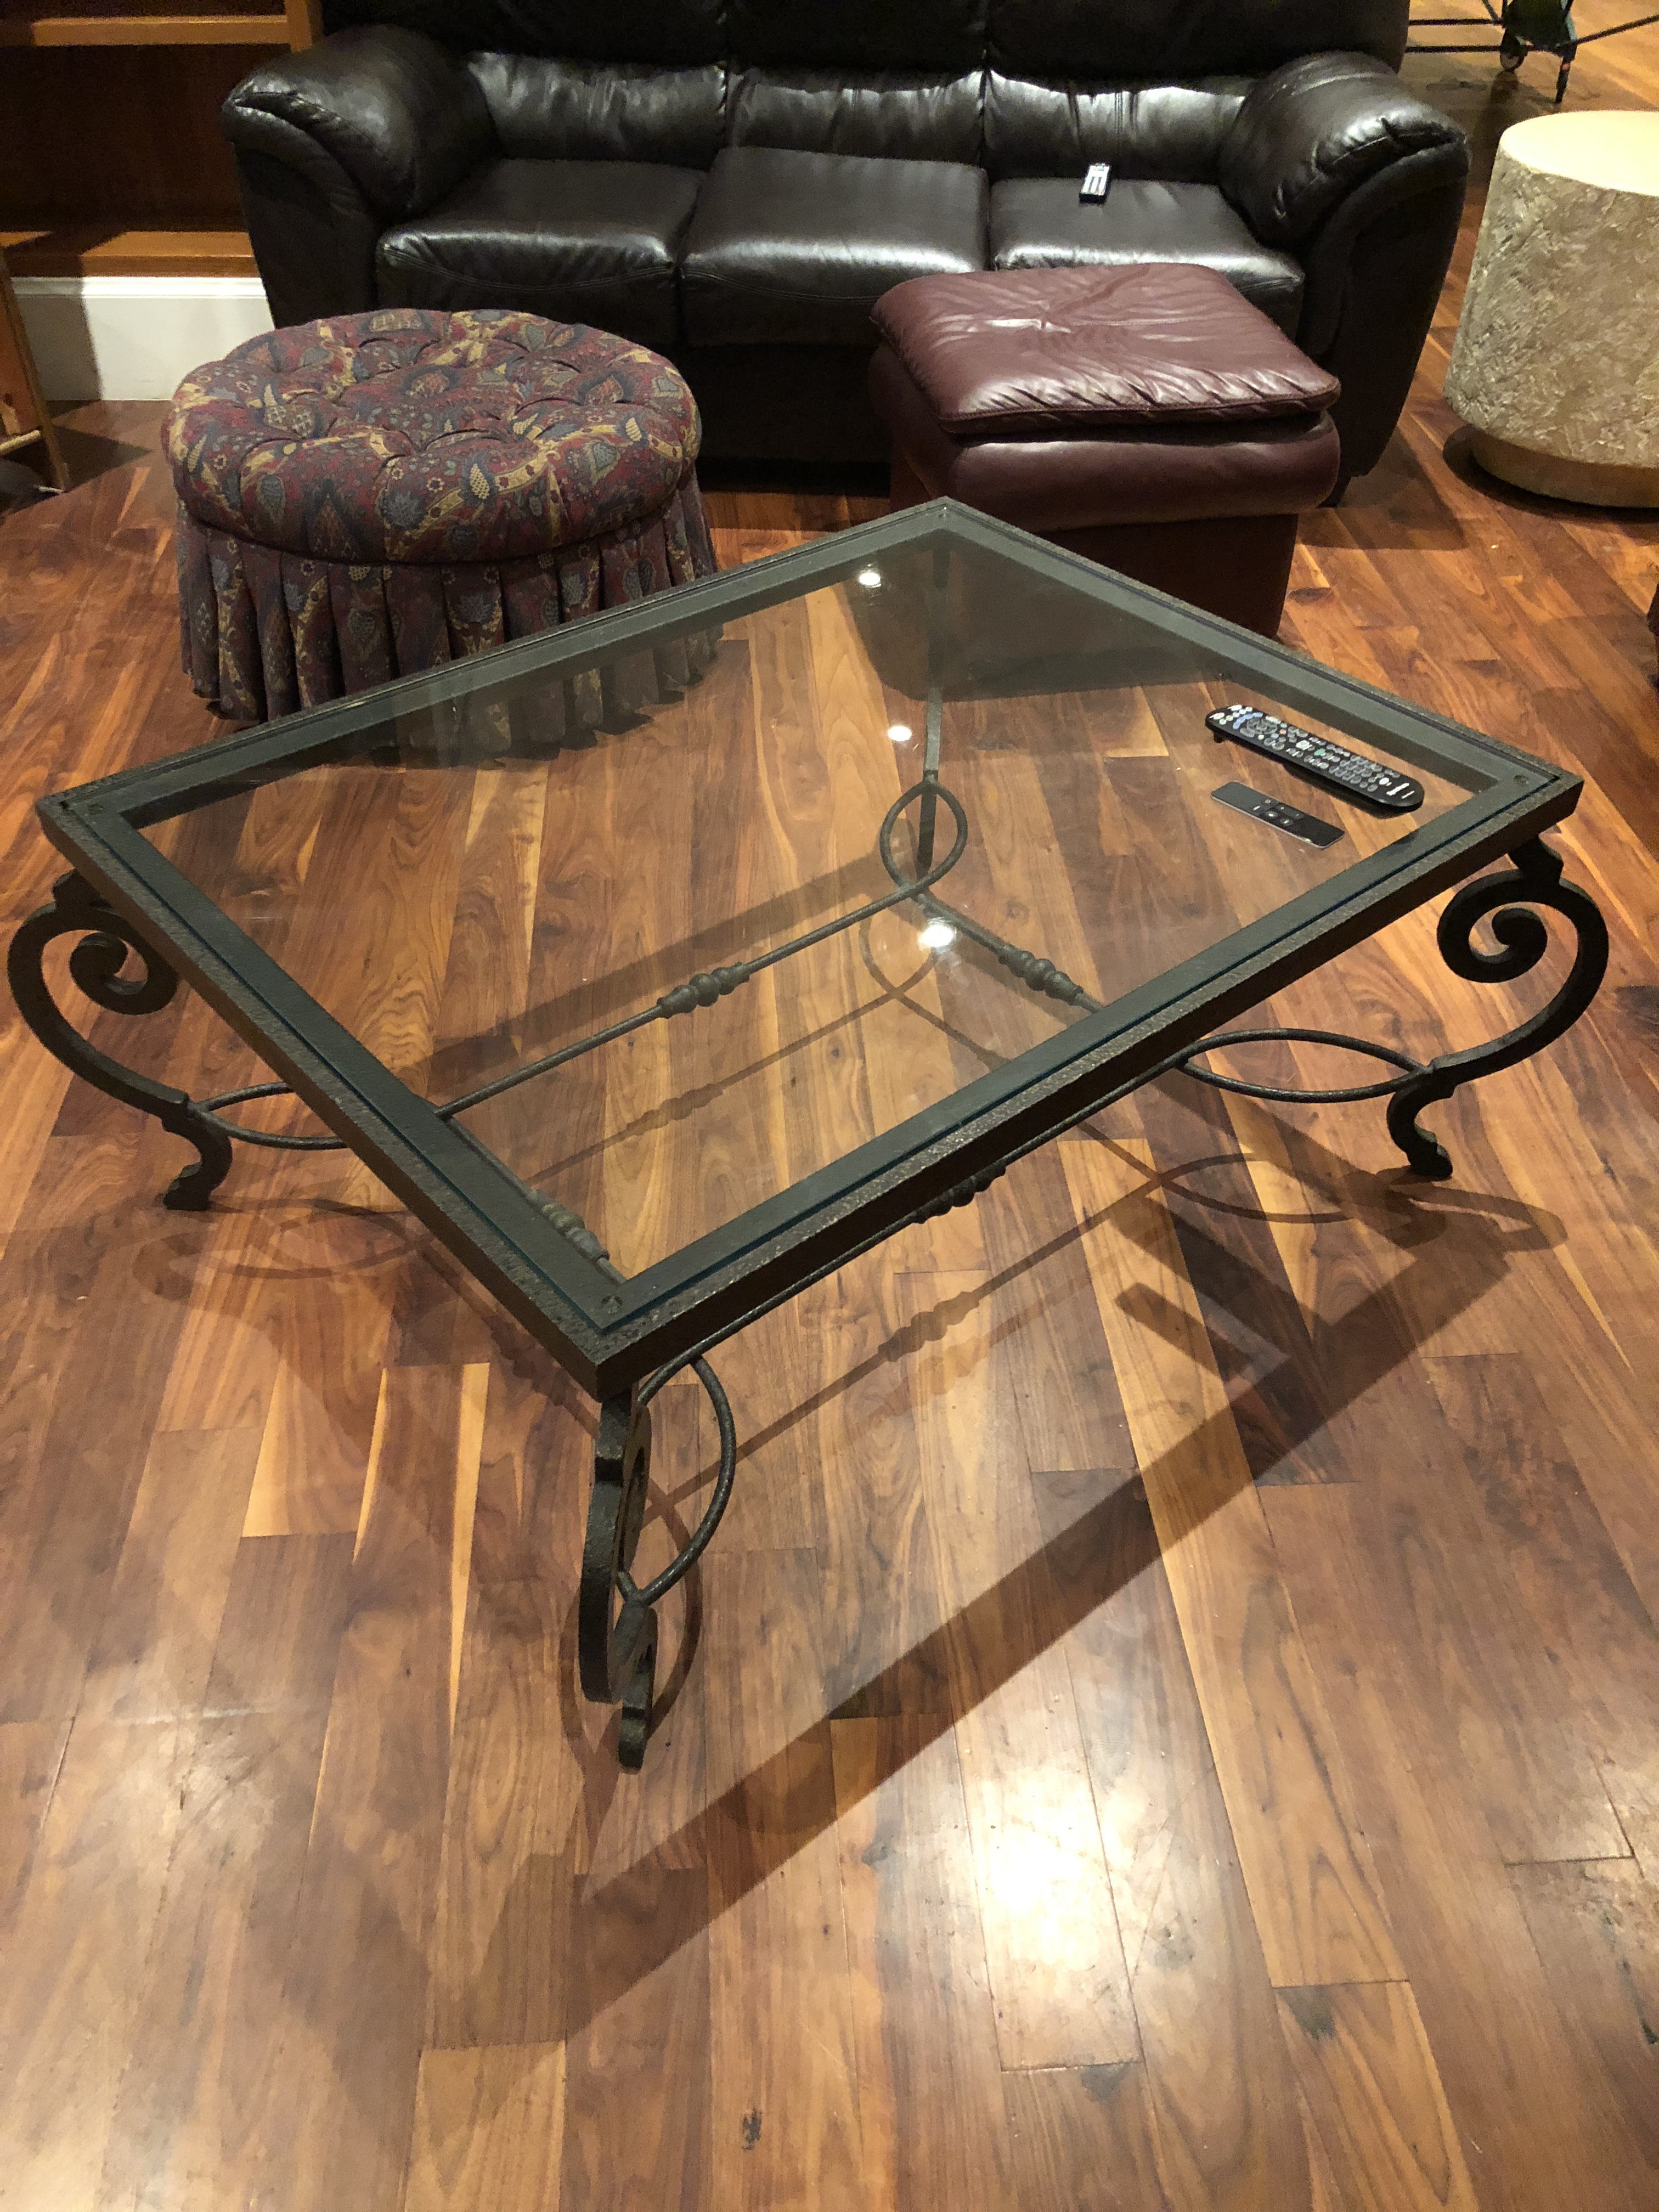 Lovely Wrought Iron And Glass Coffee Table Available In NYC Loft Apartment  Liquidation Sale. Table